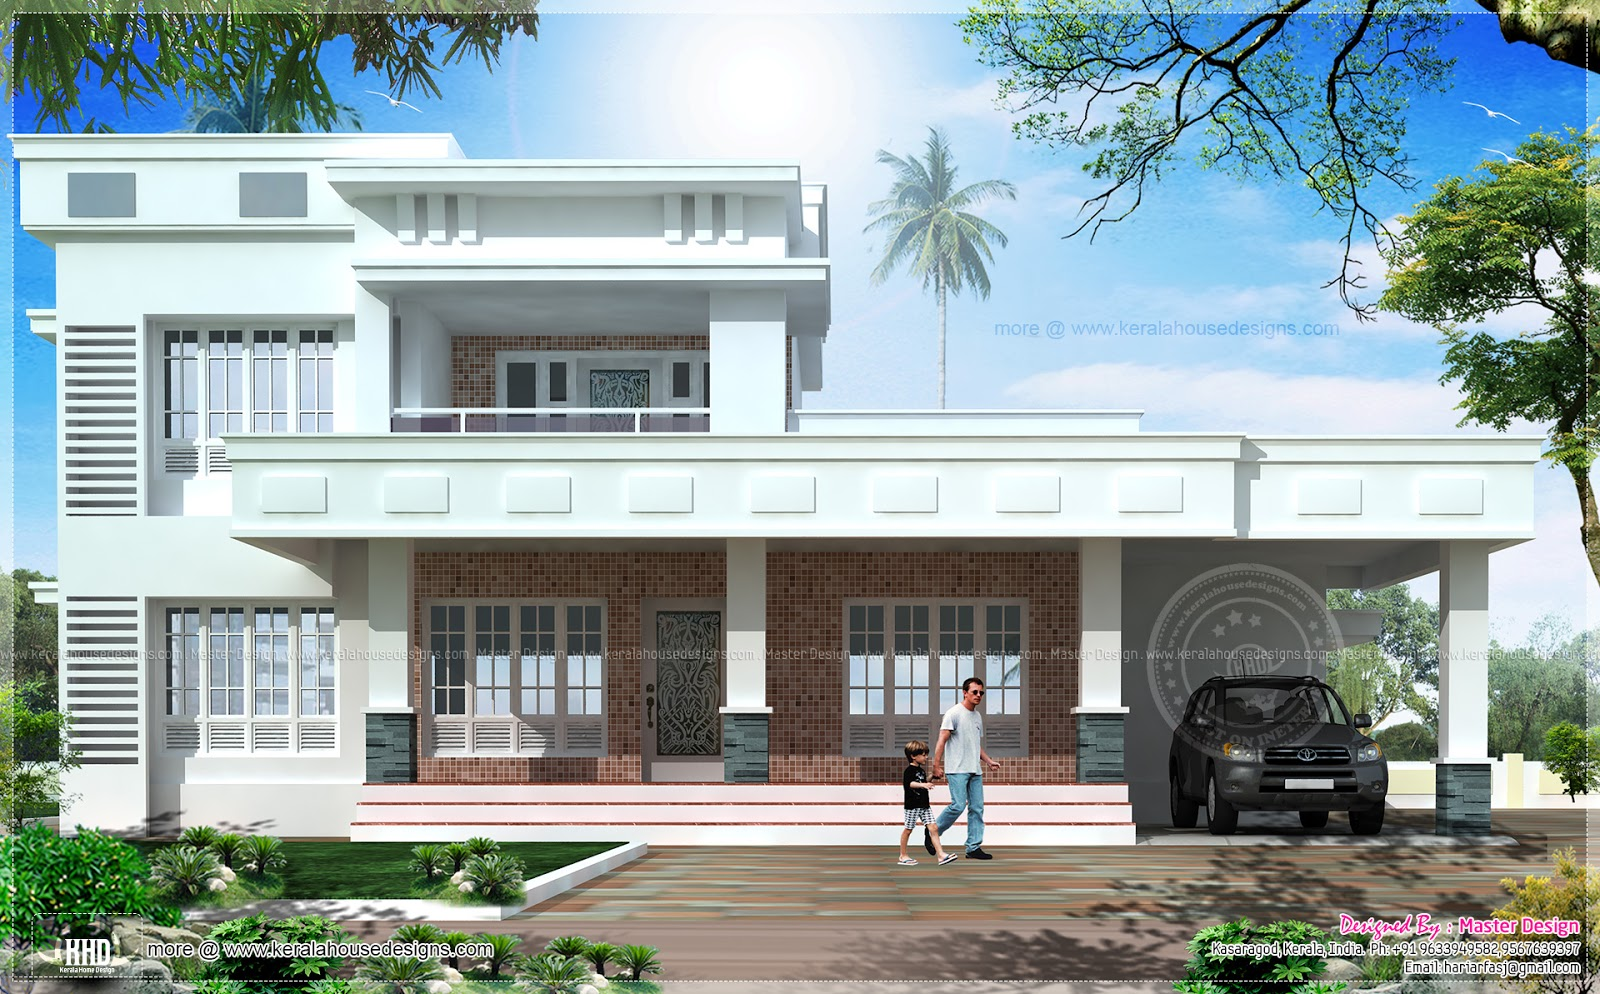 Box model east face vastu house design home kerala plans for Indian vastu home plans and designs